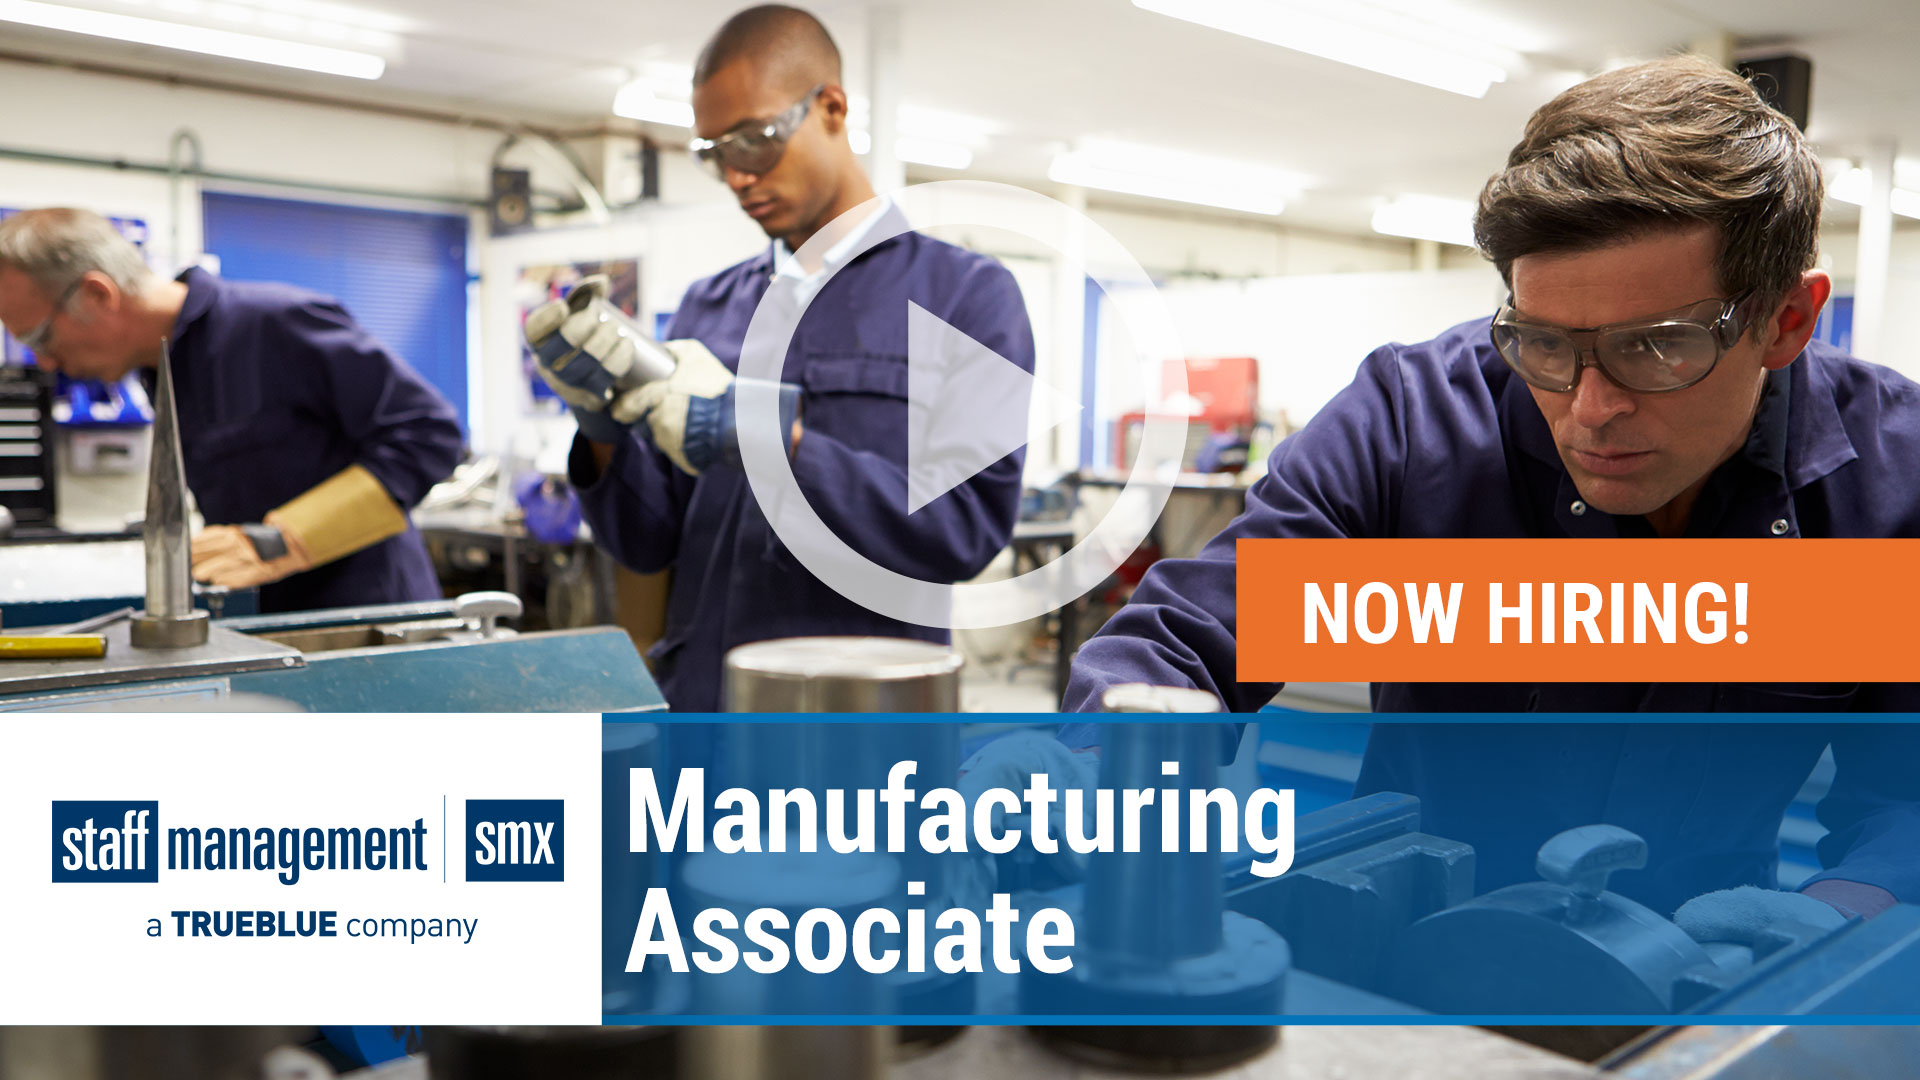 Watch our careers video for available job opening Manufacturing Associate in Various Offices in Nationwide